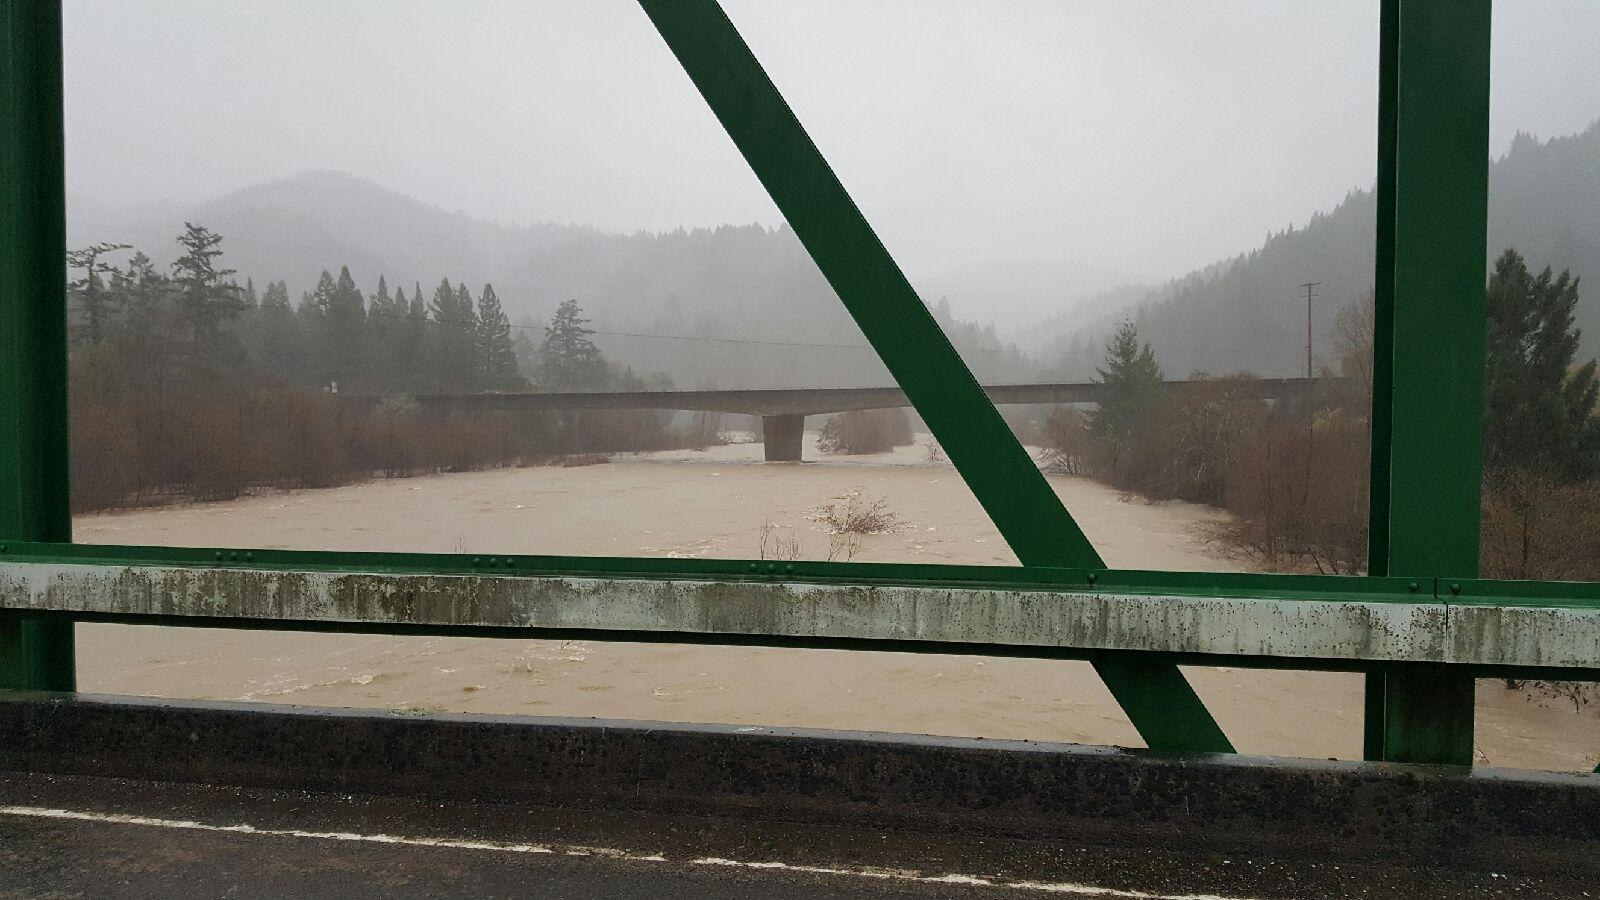 This picture is from Jamie Bowers on February 10, 2017 of the South Fork Eel farther downstream in Piercy, Ca.